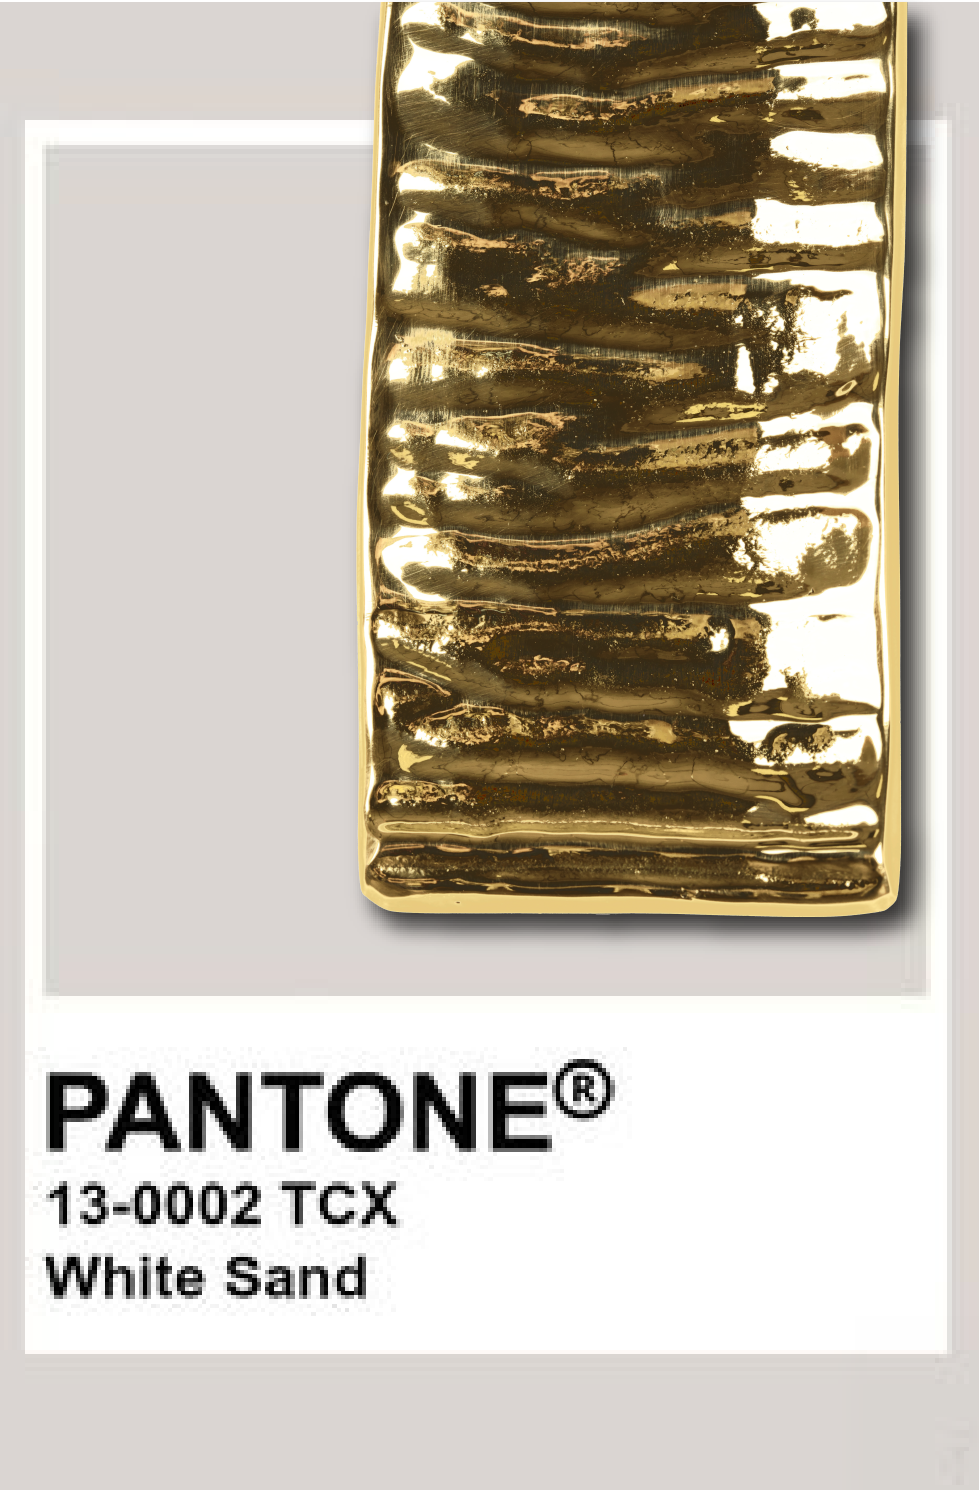 Pantone Color of The Year: PullCast Edition pantone color of the year 2020 Pantone Color of The Year 2020: PullCast Edition Patones Pullcast 03 e1576076543345